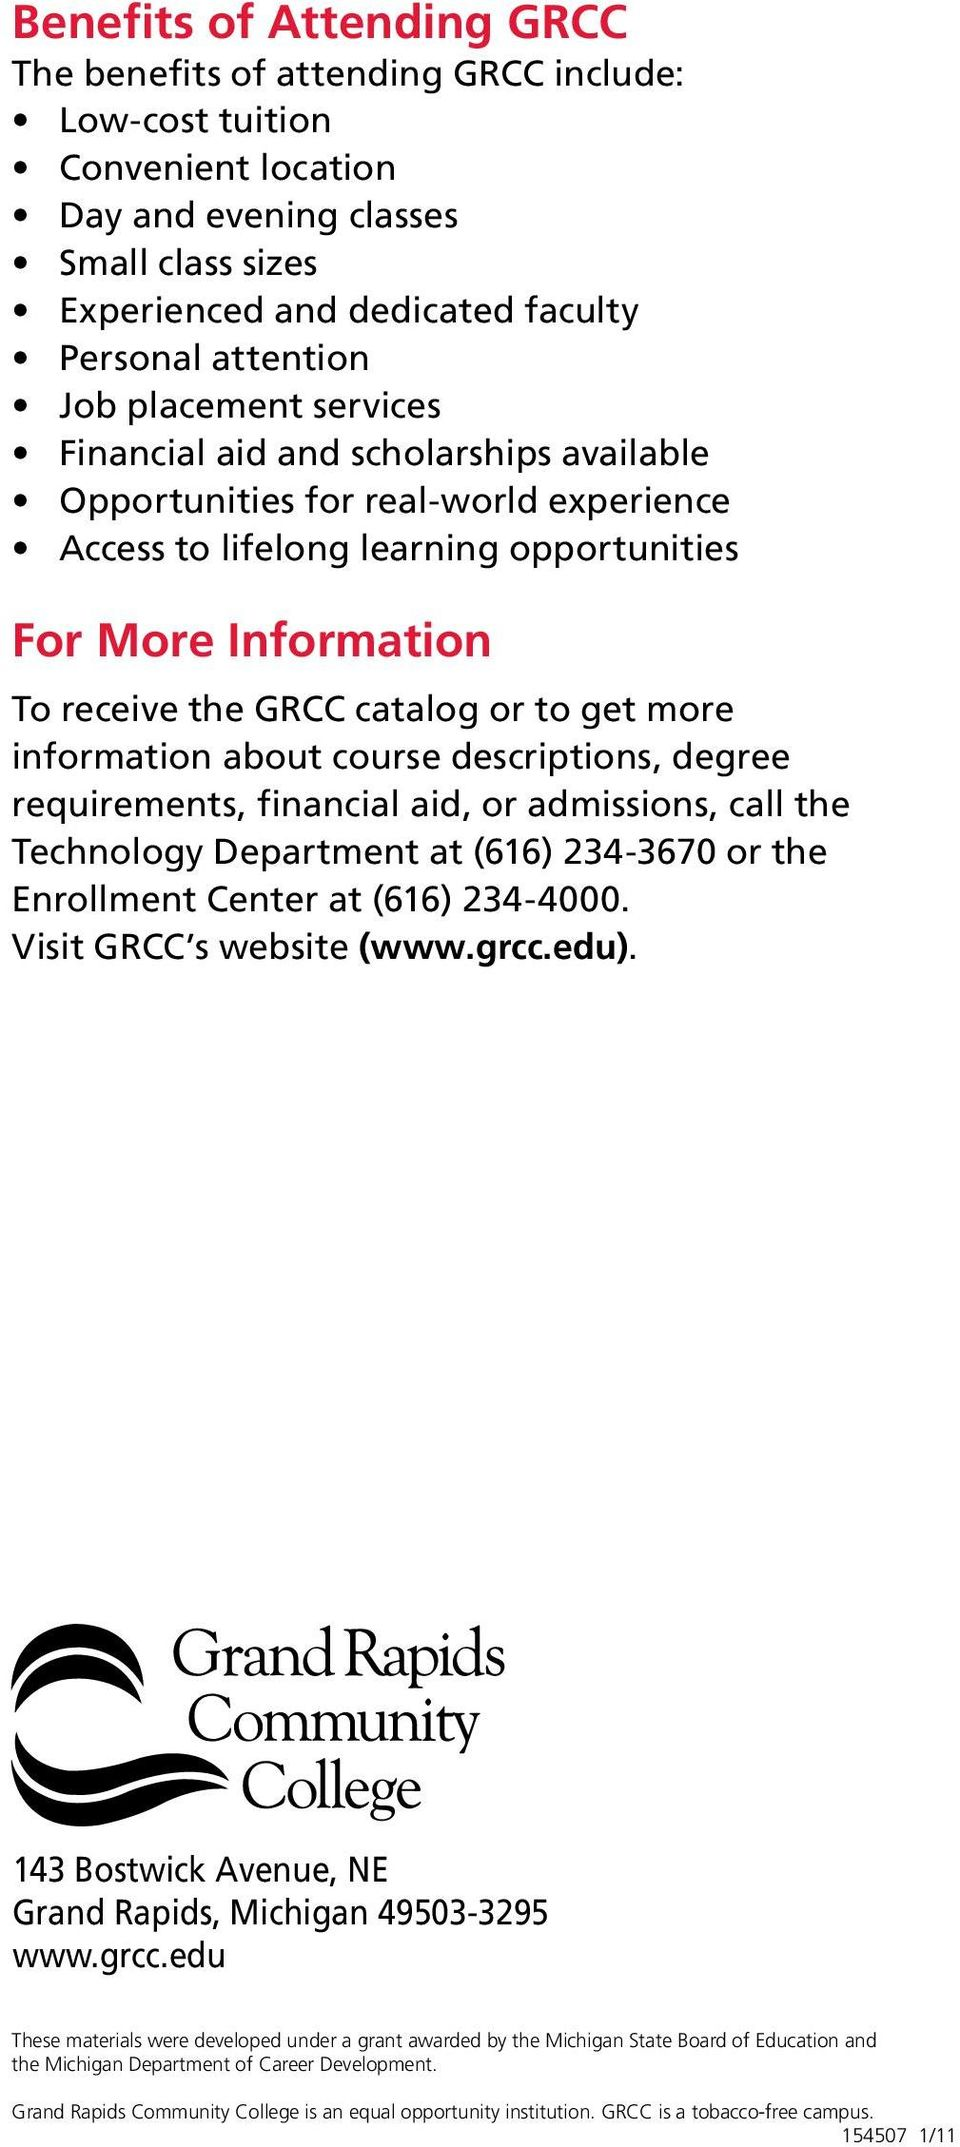 to get more information about course descriptions, degree requirements, financial aid, or admissions, call the Technology Department at (616) 234-3670 or the Enrollment Center at (616) 234-4000.